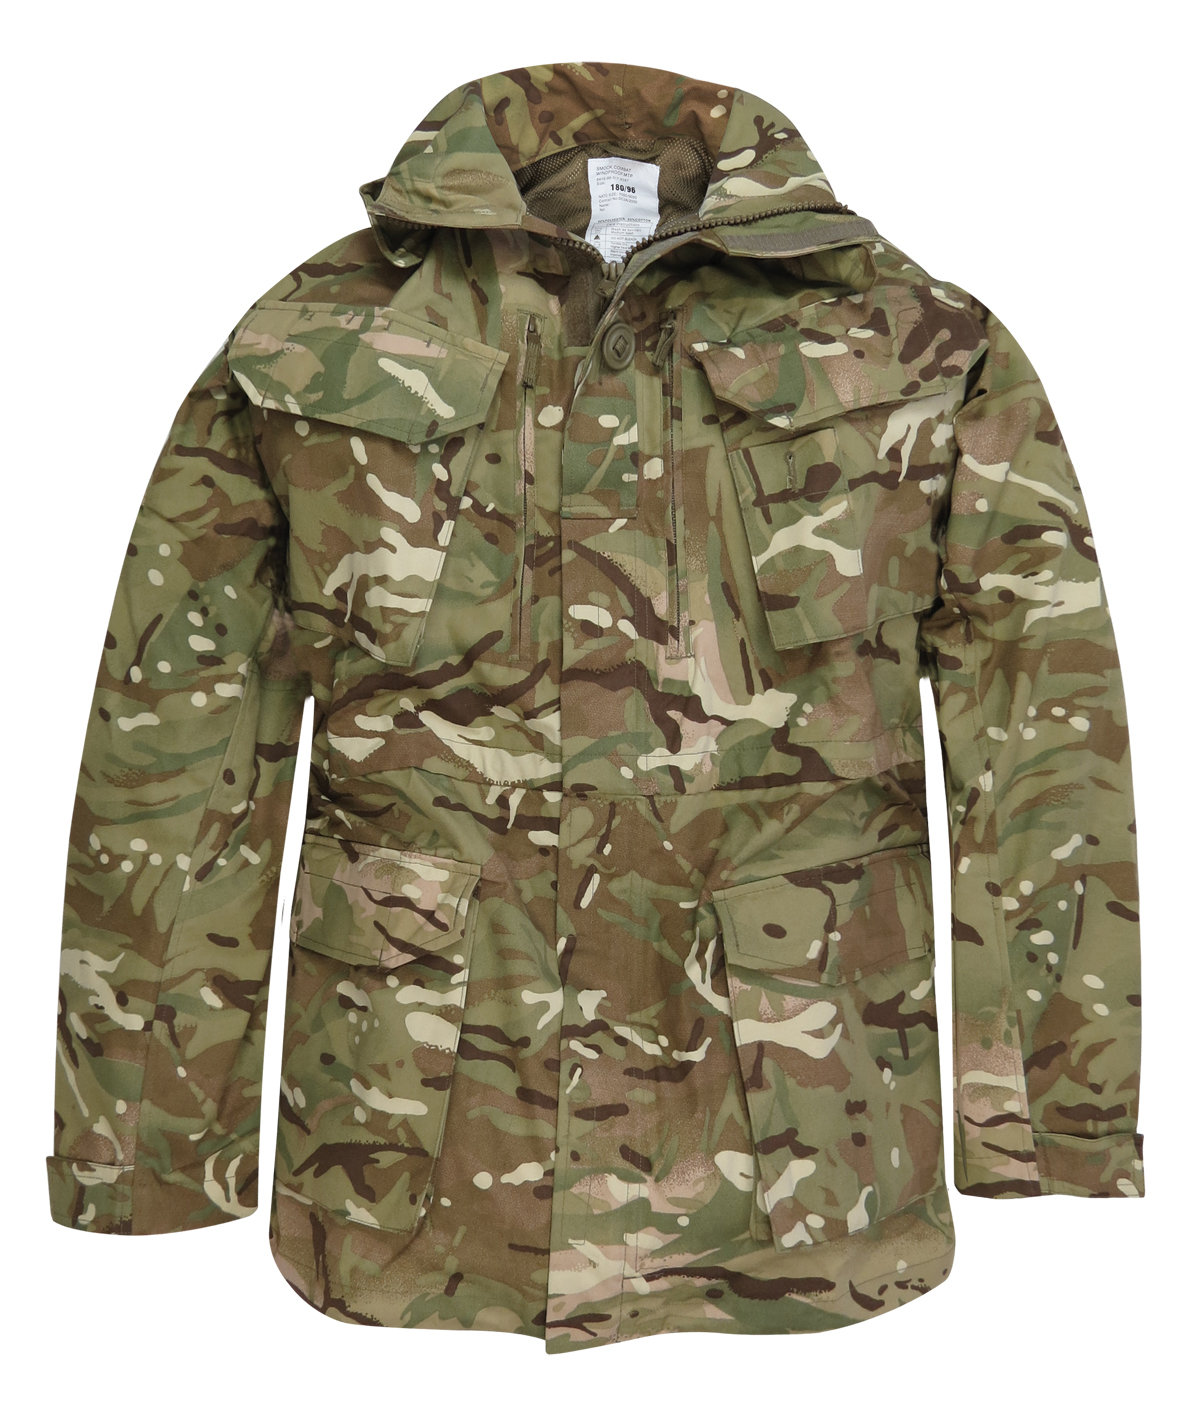 British Army New Genuine Mtp Pcs Windproof Combat Jackets